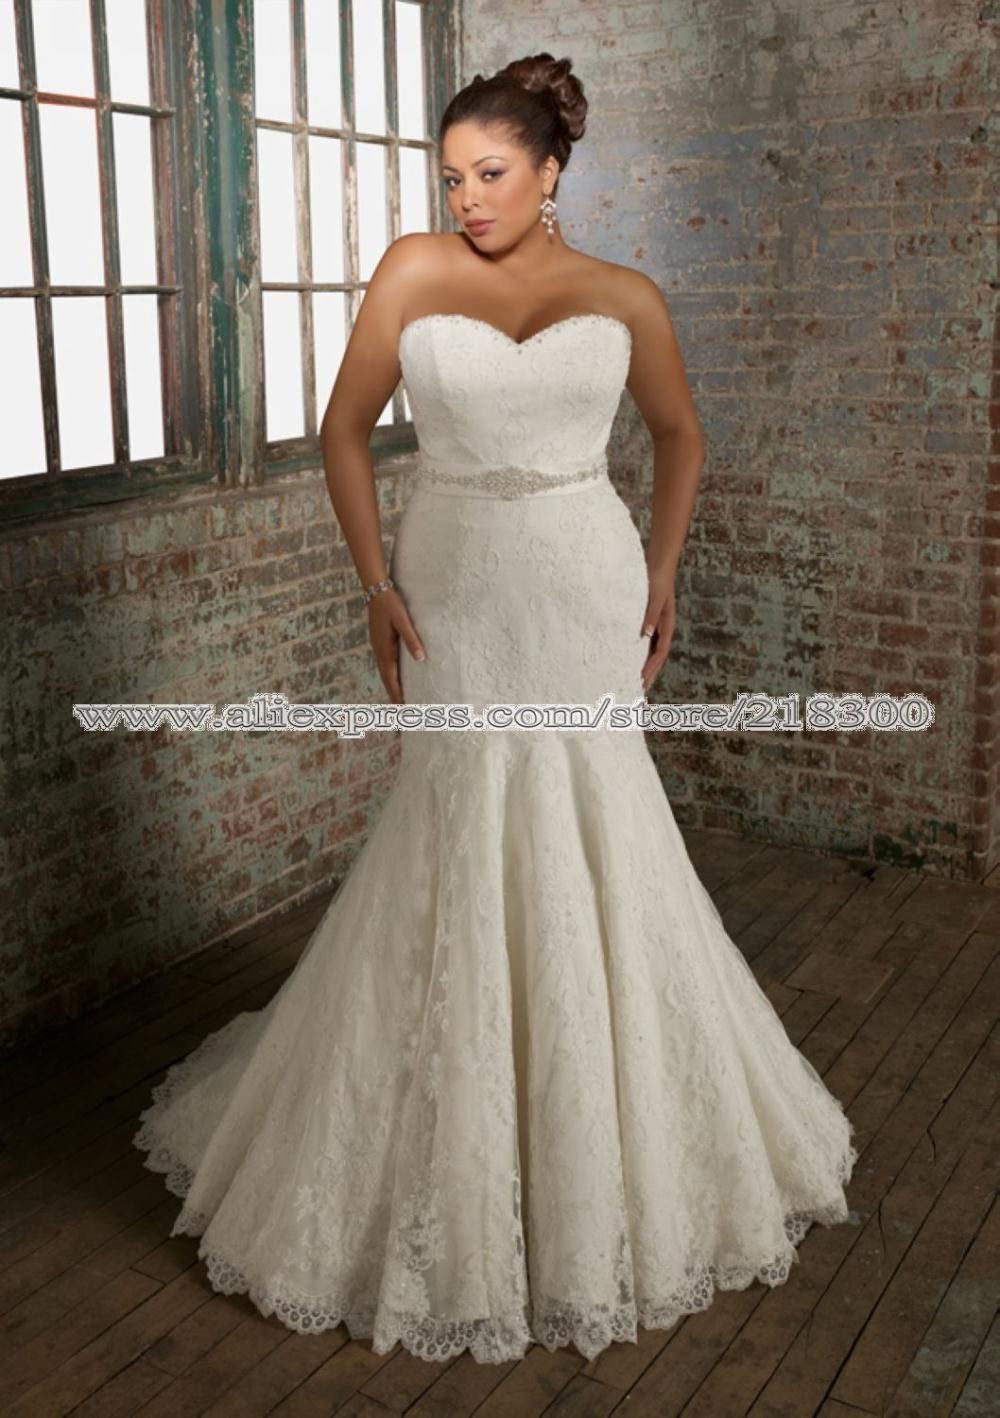 Womens Wedding Dresses For Full Figured Women